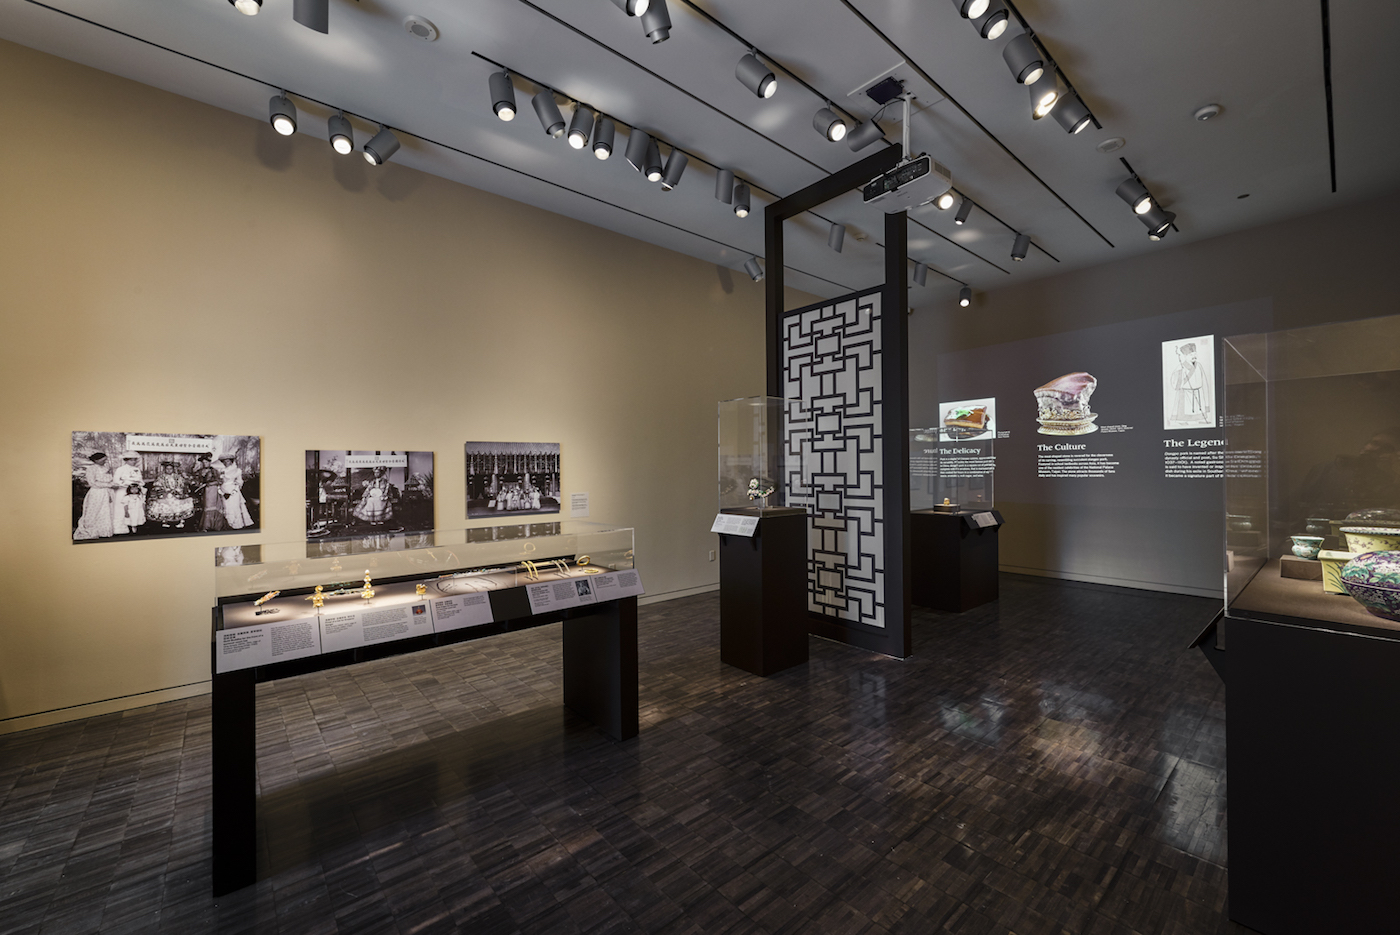 Exhibition view of Emperors' Treasures at the Asian Art Museum